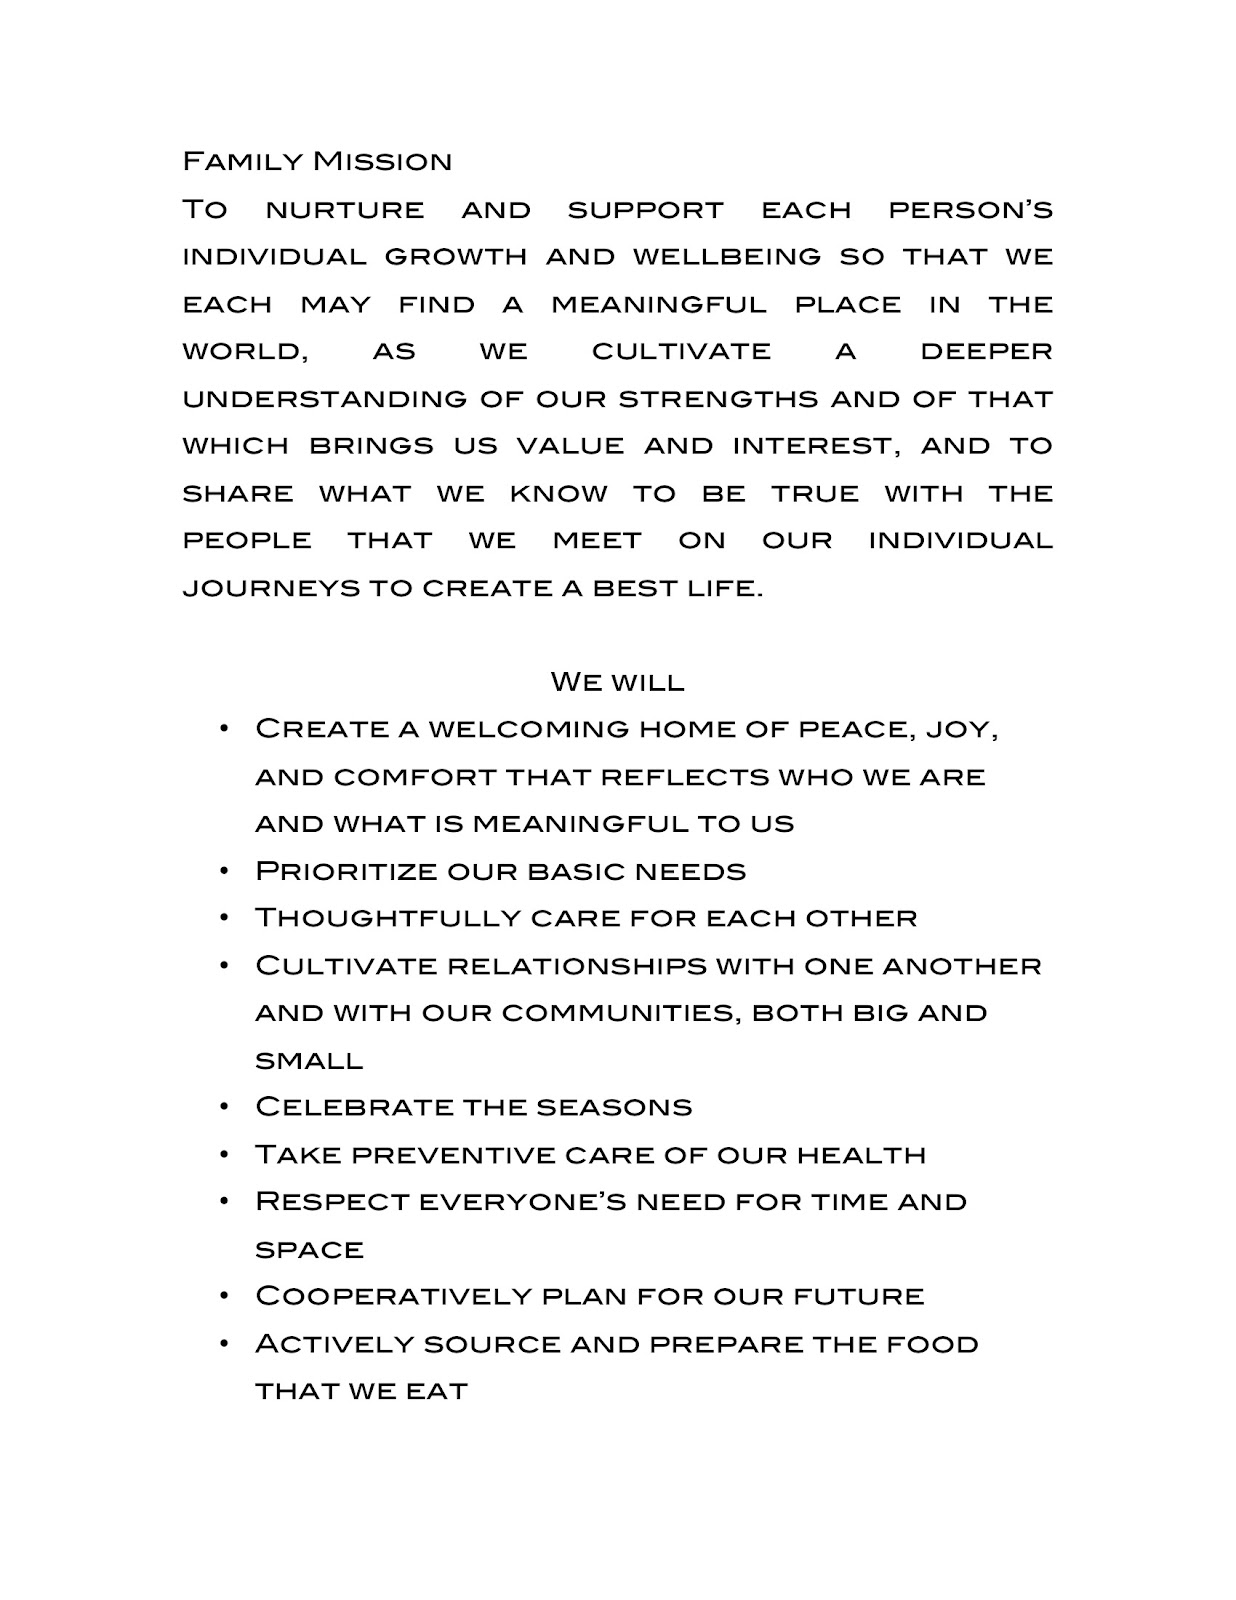 marbles rolling family mission statement page 1 jpg